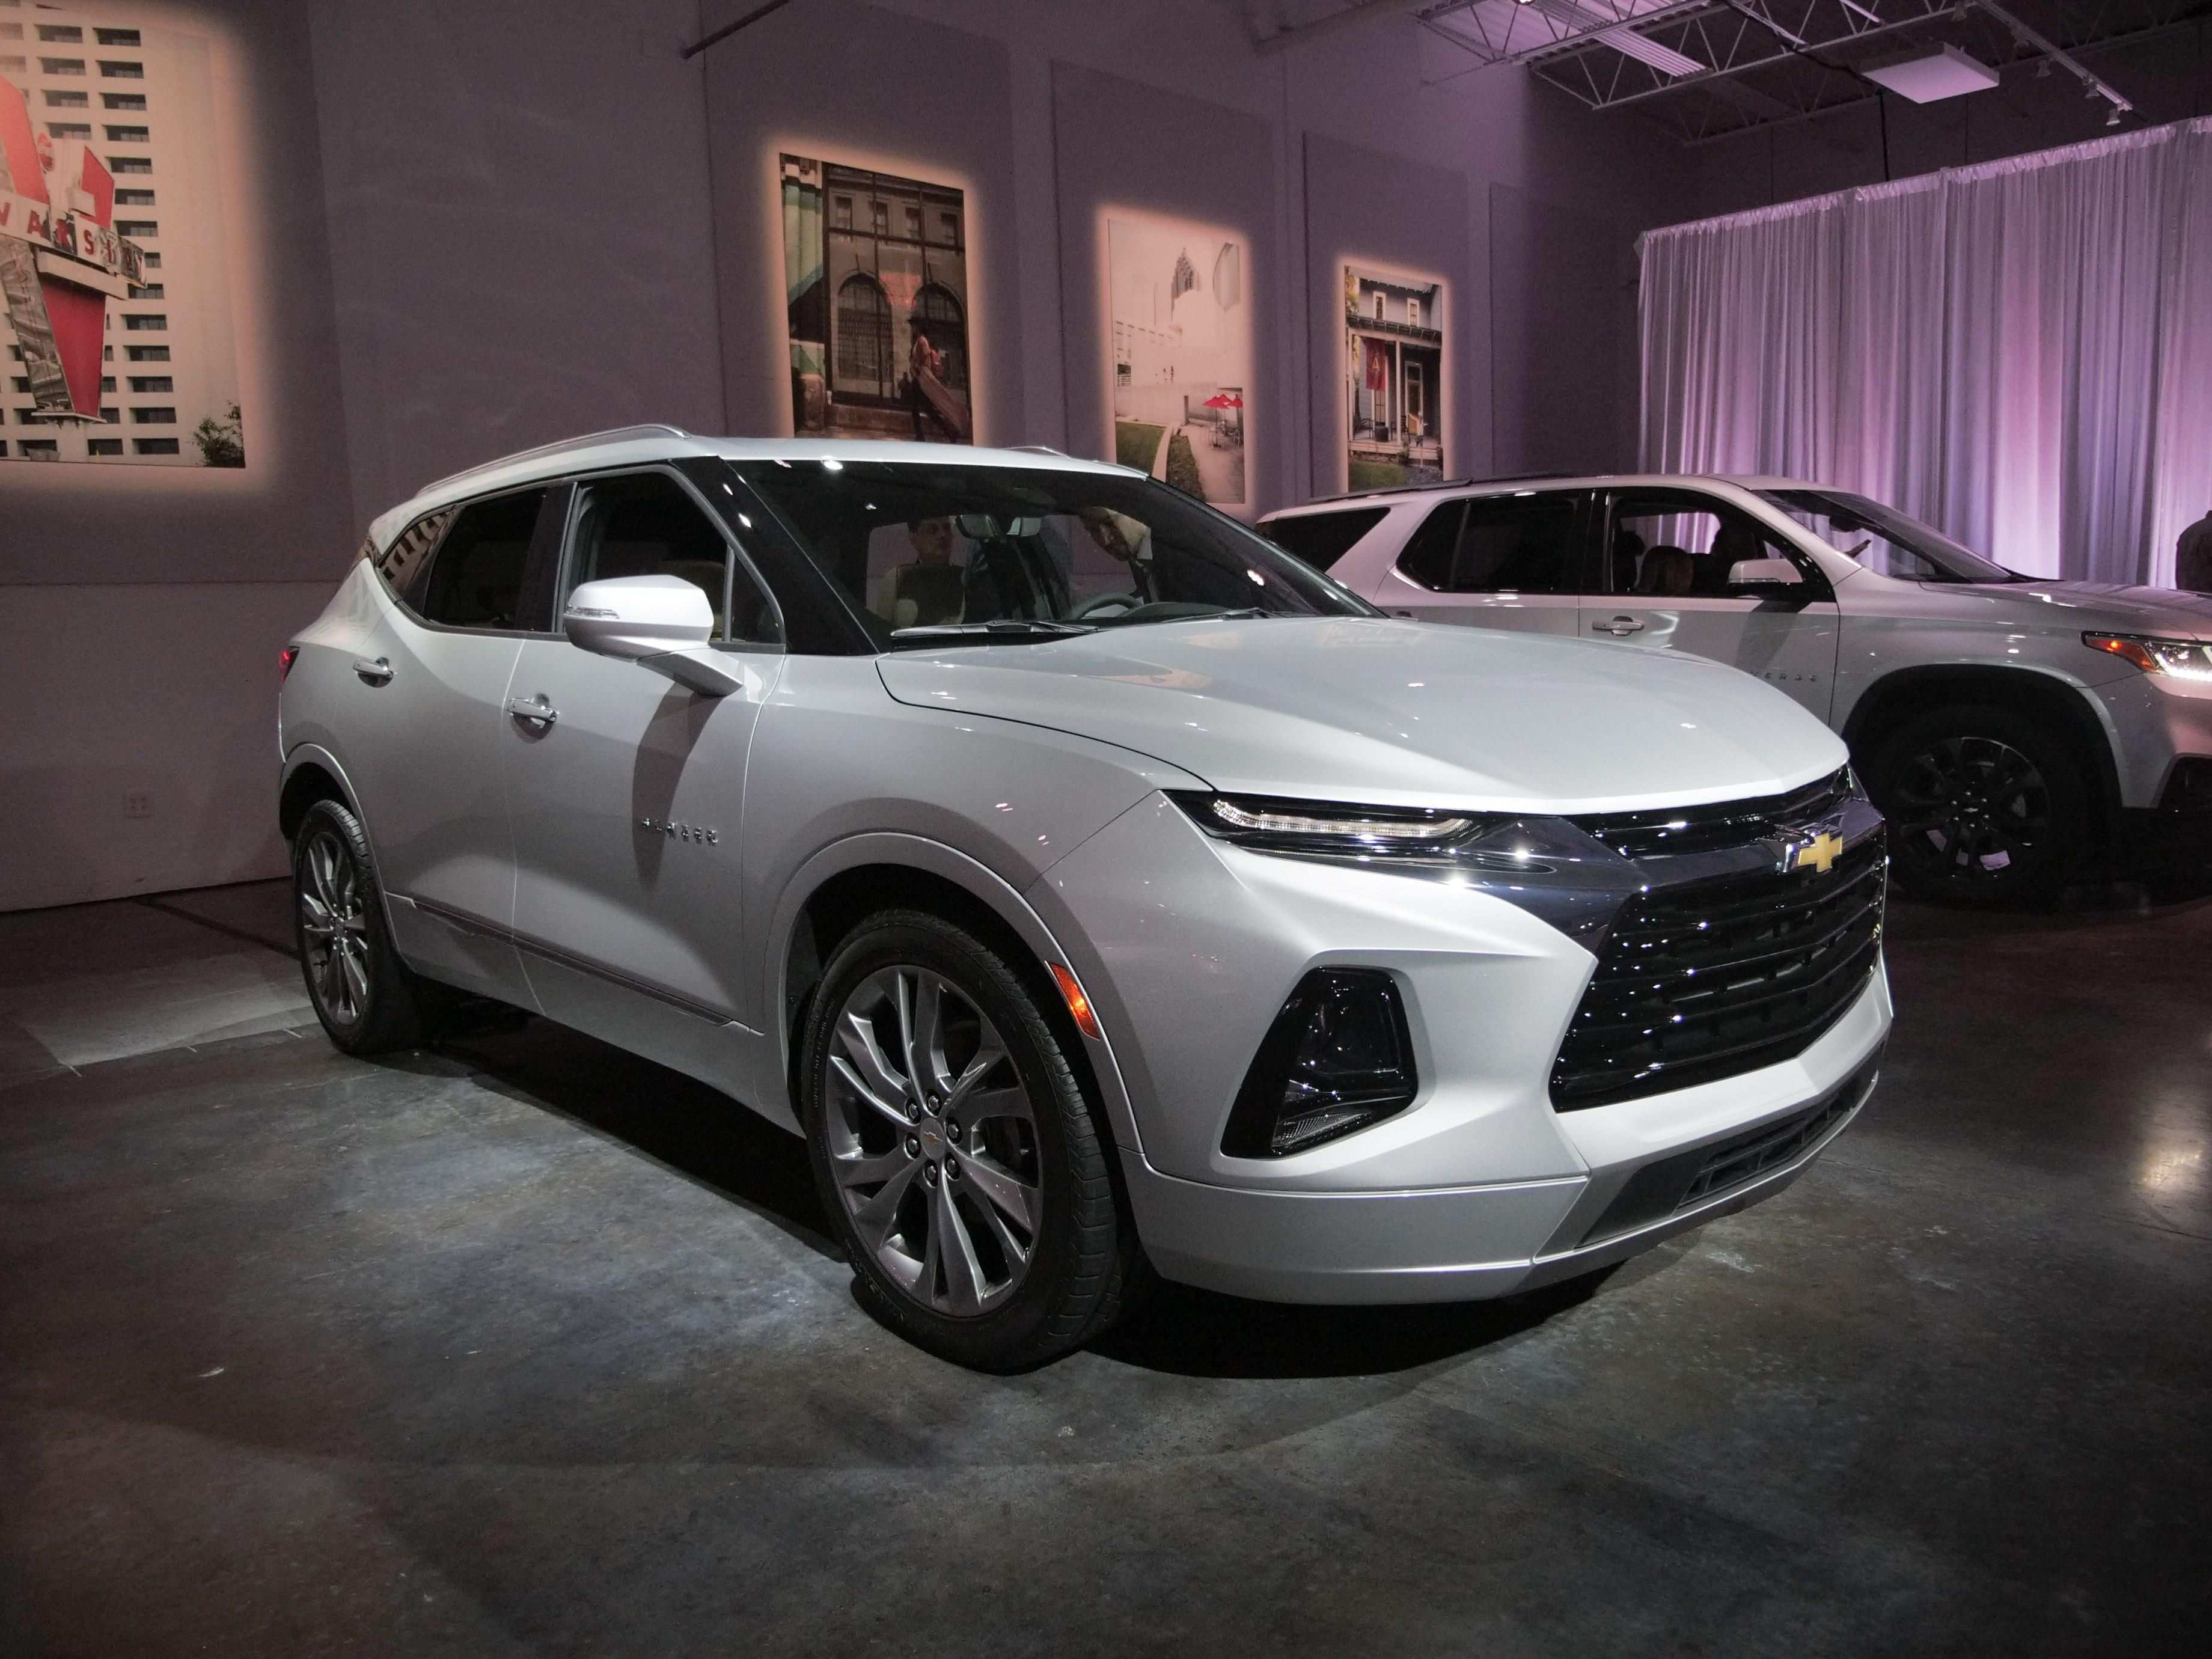 18 All New 2019 Chevrolet Vehicles Spy Shoot for 2019 Chevrolet Vehicles